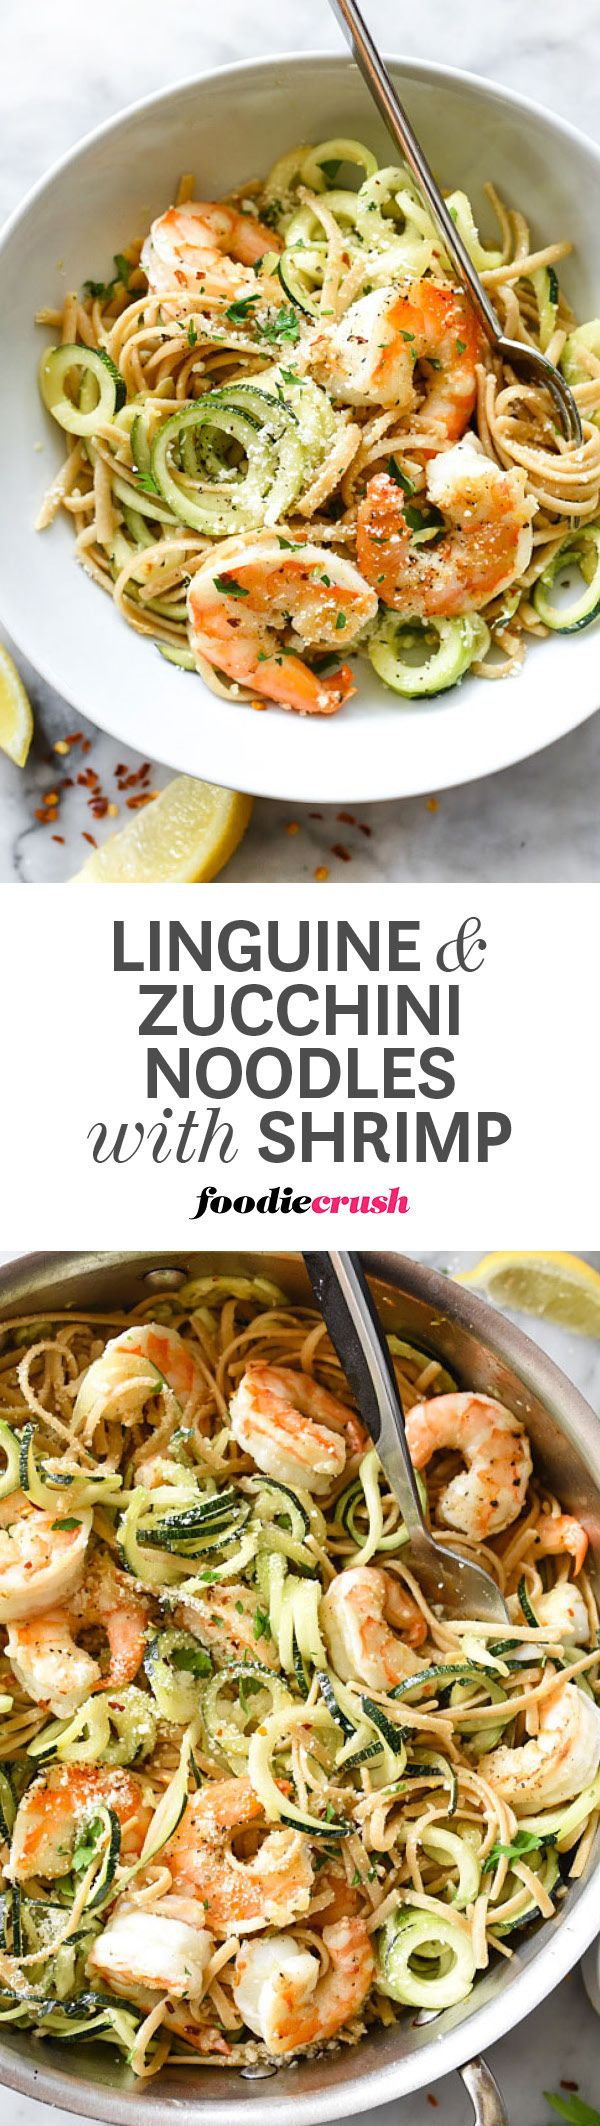 It's not a question of either/or pasta/zucchini noodles but rather, AND/WITH...plus, SHRIMP! This is the best | foodiecrush.com #shrimp #zoodles #pasta #linguine #zucchini